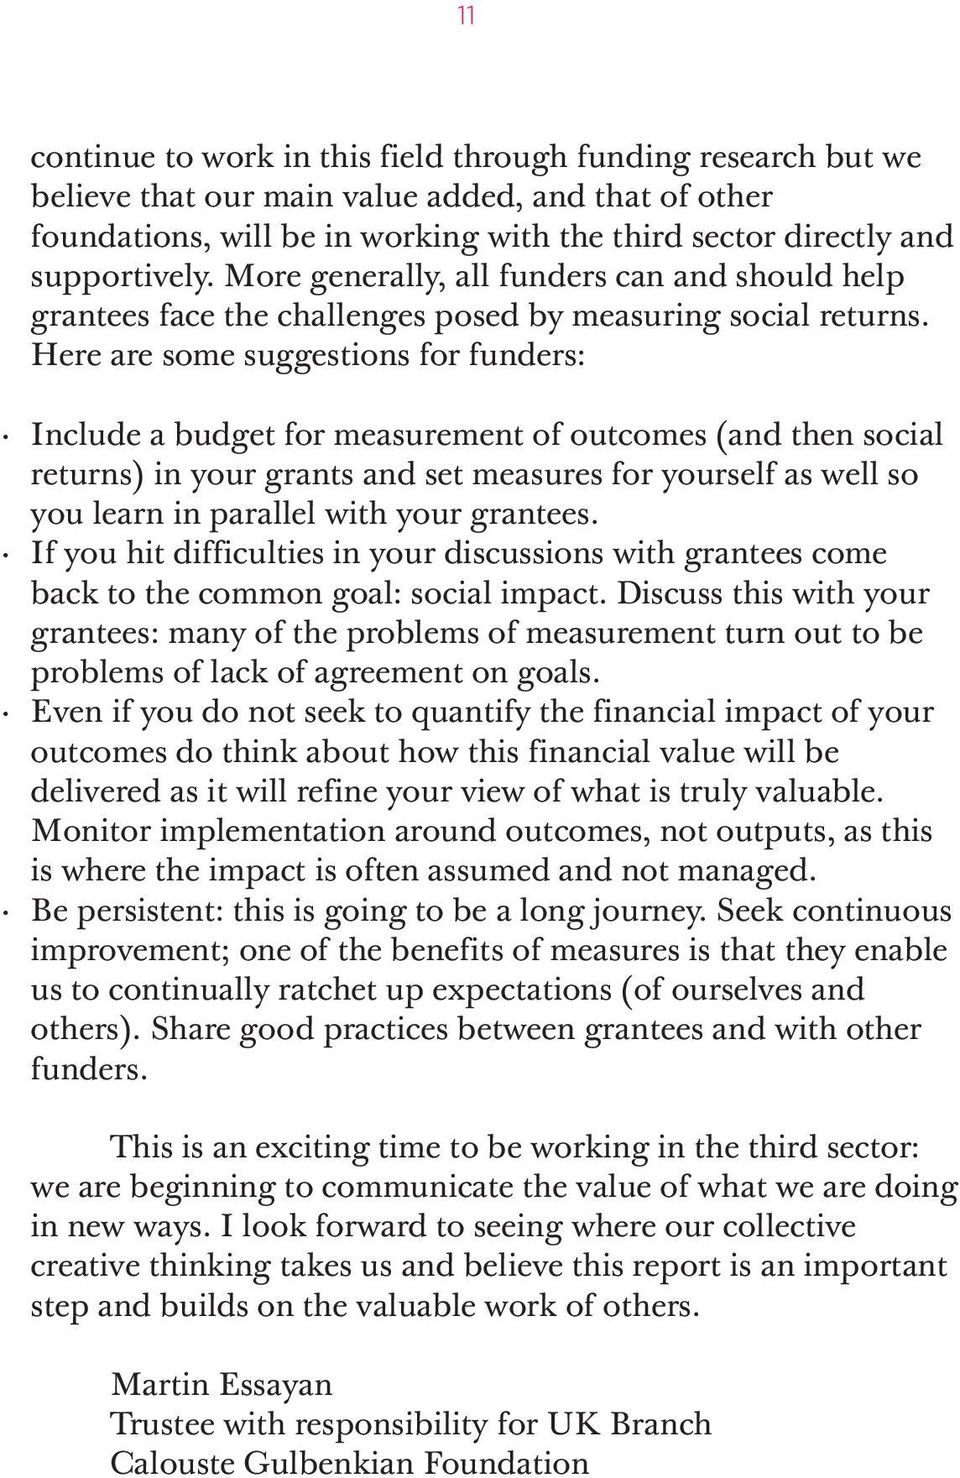 Here are some suggestions for funders: Include a budget for measurement of outcomes (and then social returns) in your grants and set measures for yourself as well so you learn in parallel with your